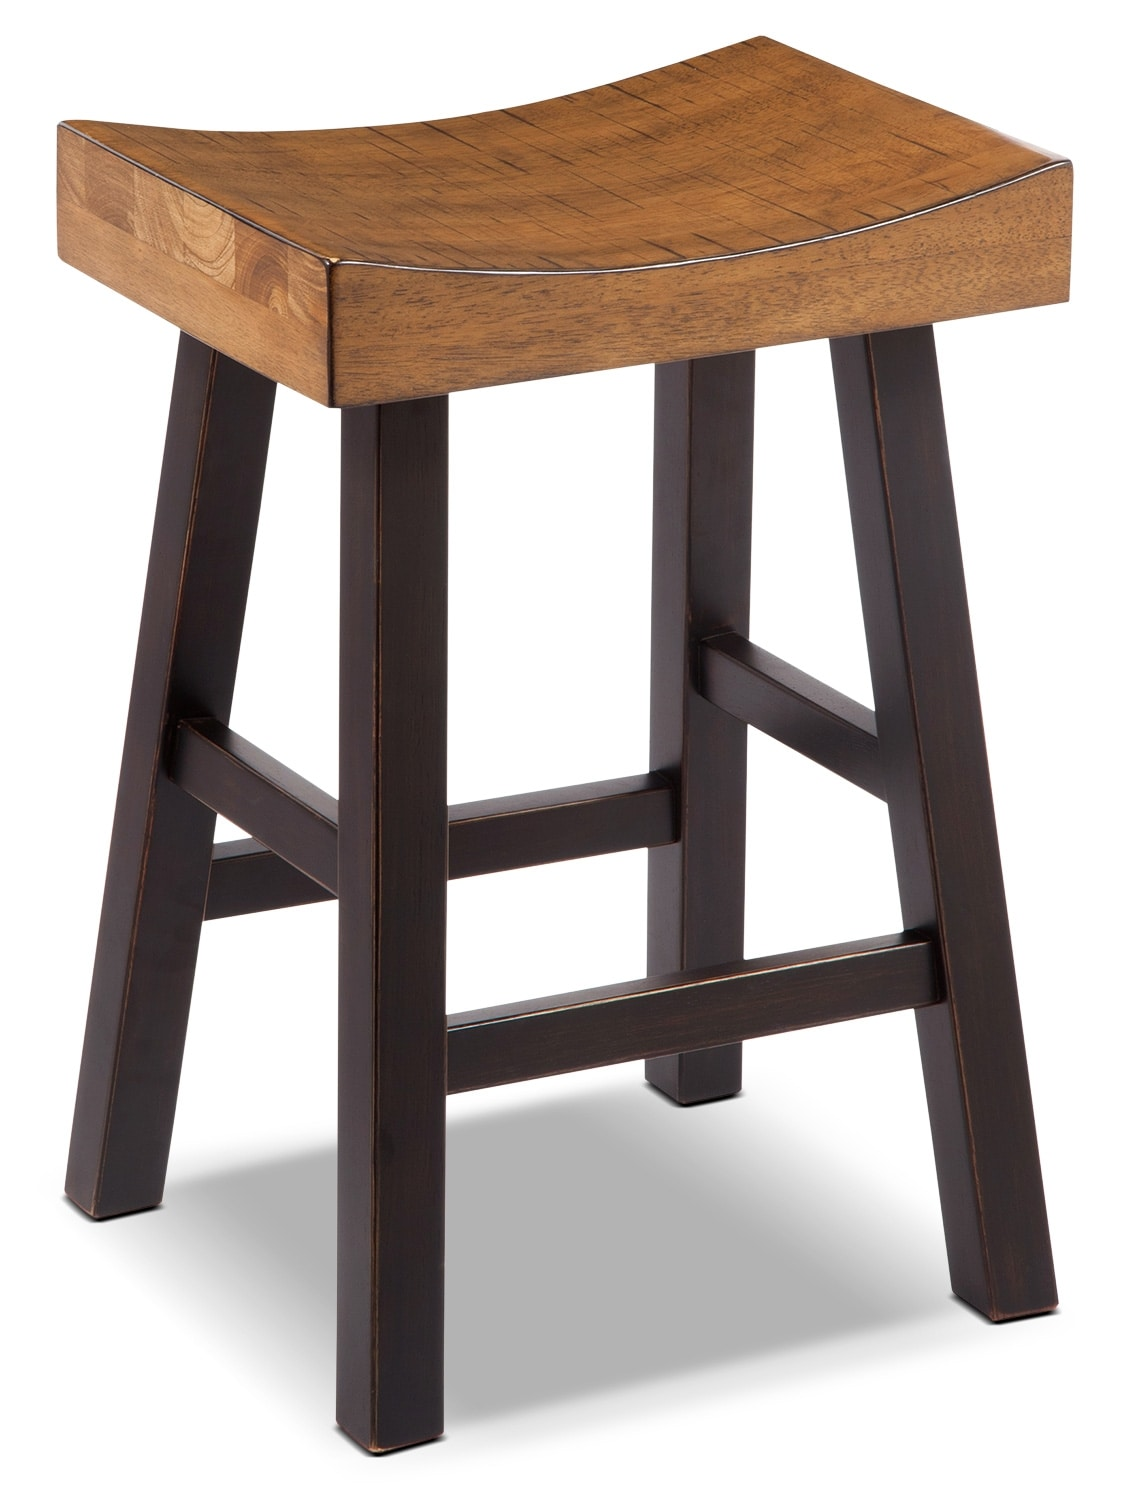 "Dining Room Furniture - Glosco 24"" Saddle-Seat Bar Stool"